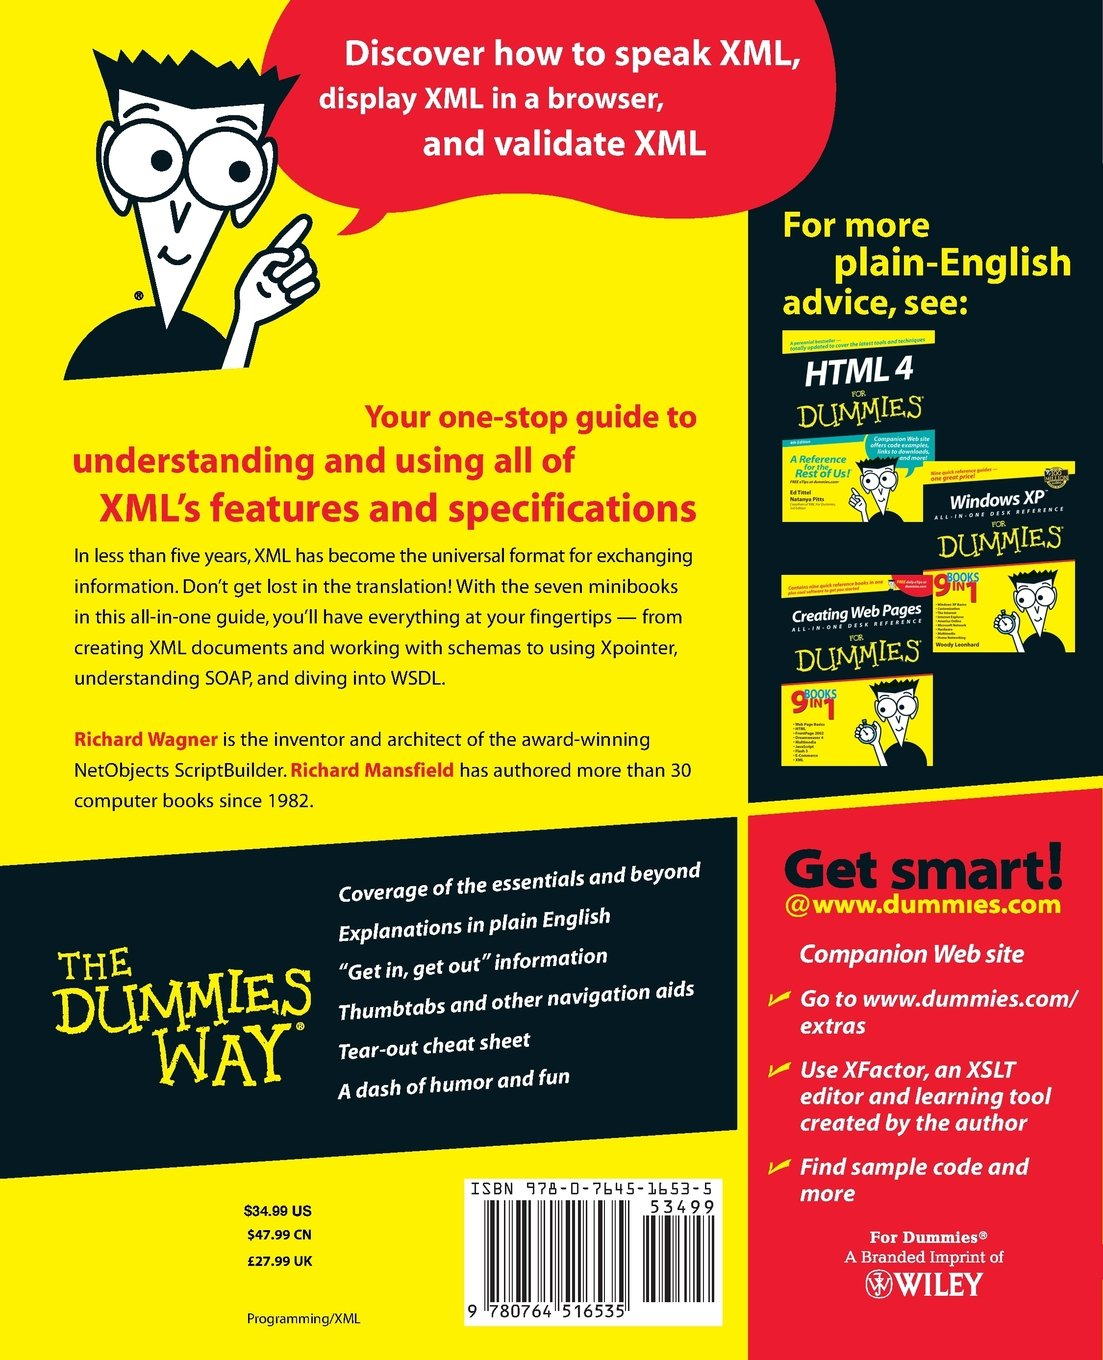 XML All in One Desk Reference for Dummies: Amazon.co.uk: Richard Wagner,  Richard Mansfield: 9780764516535: Books